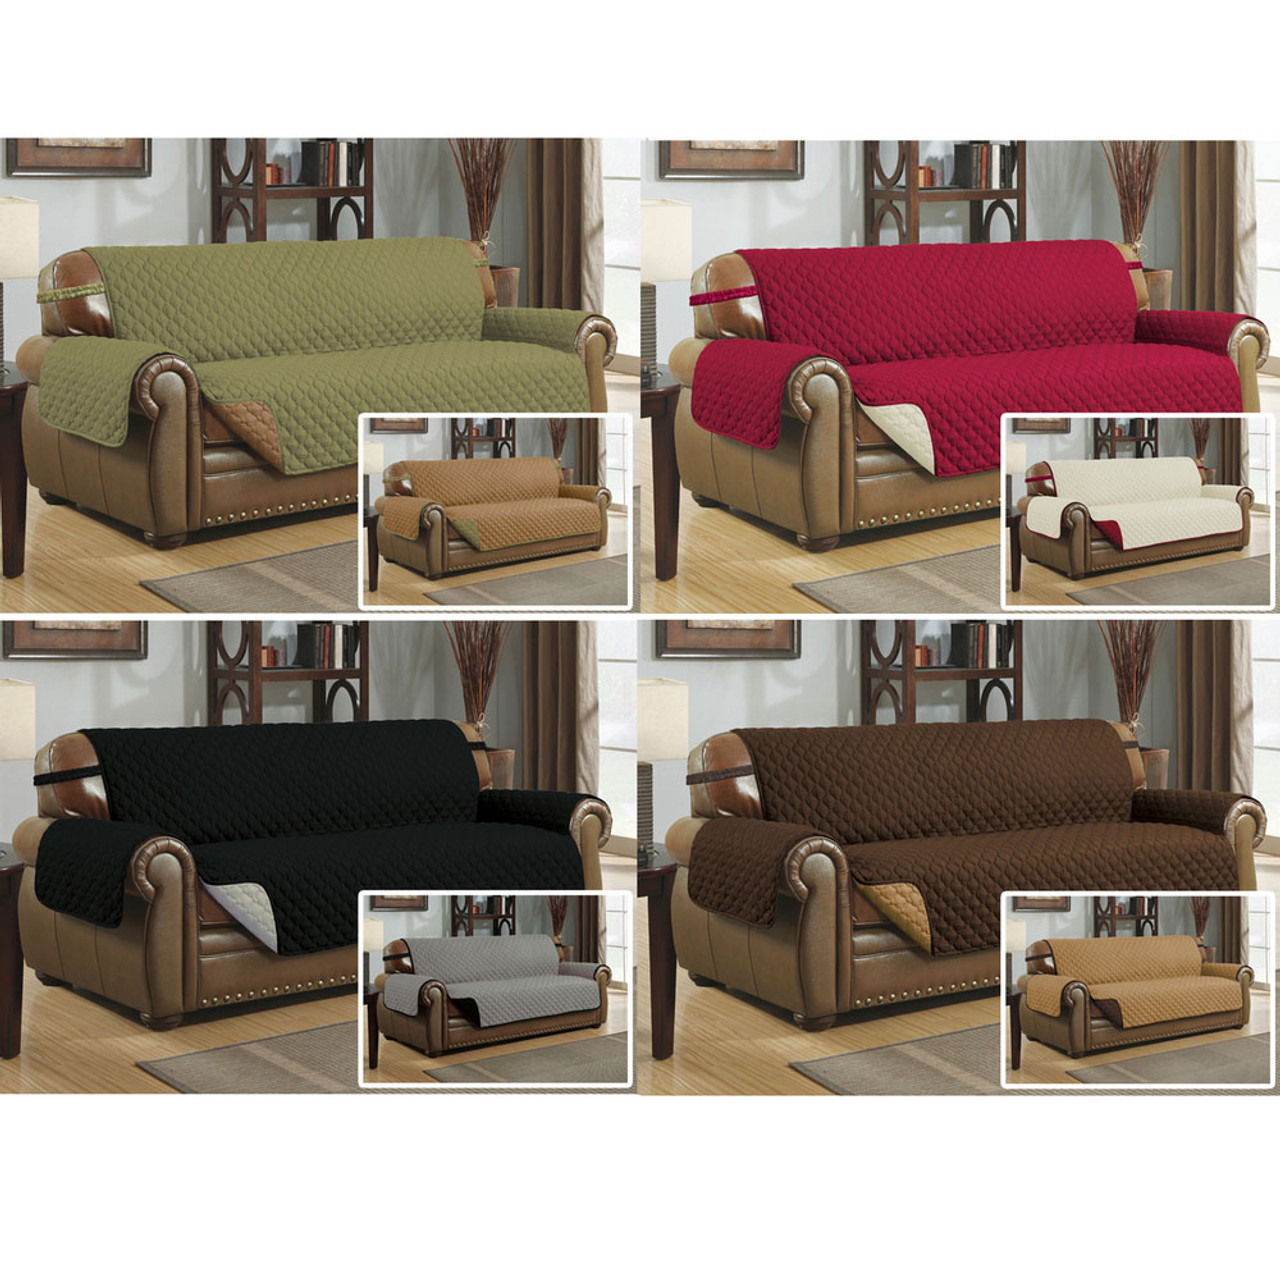 reversible quilted microfiber pet dog couch sofa furniture protector rh linenstore com sofa pet protector throw slipcover sofa pet protector australia